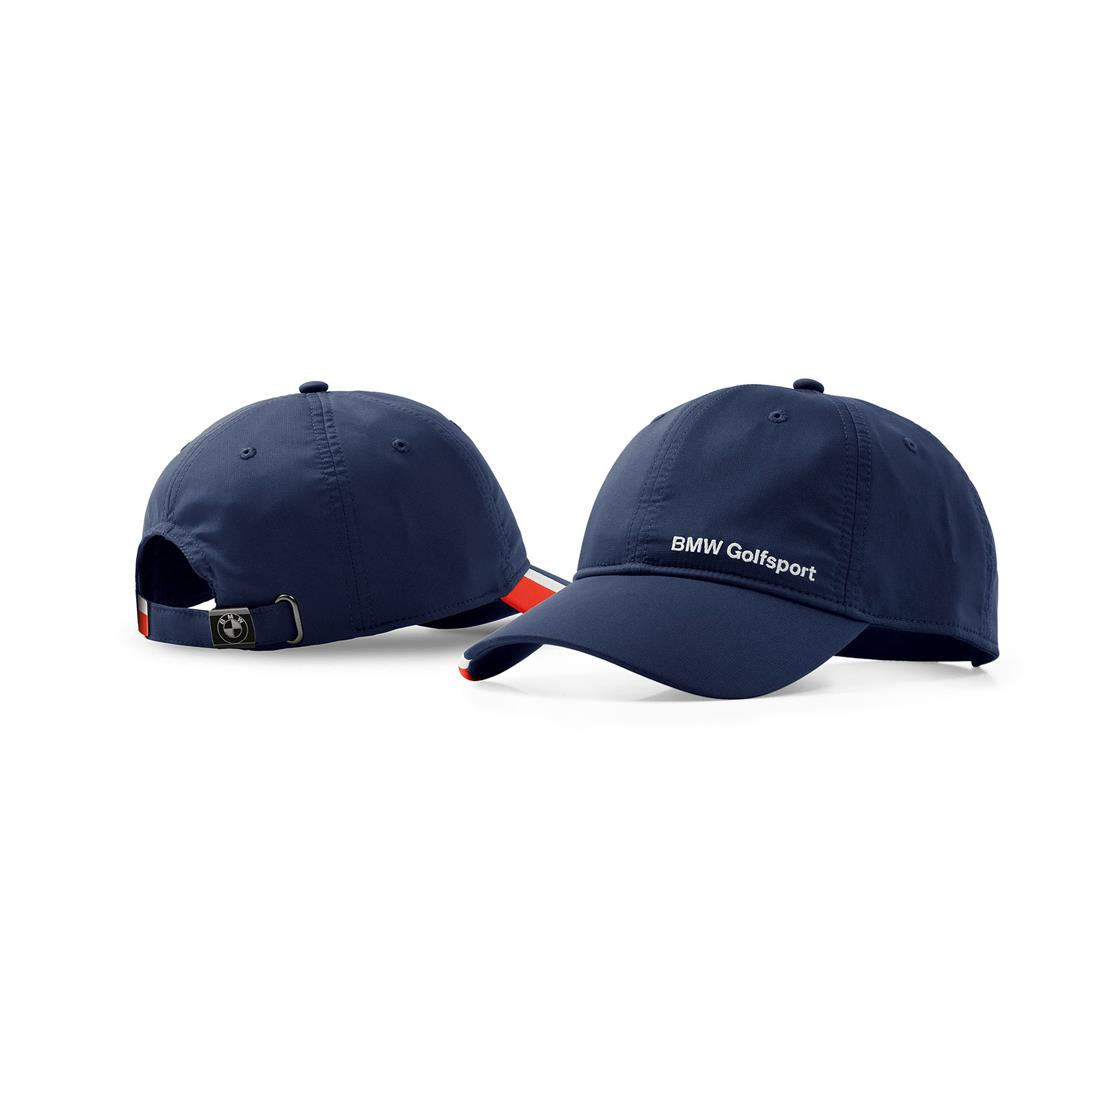 BMW Golfsport Functional Cap, Navy Blue